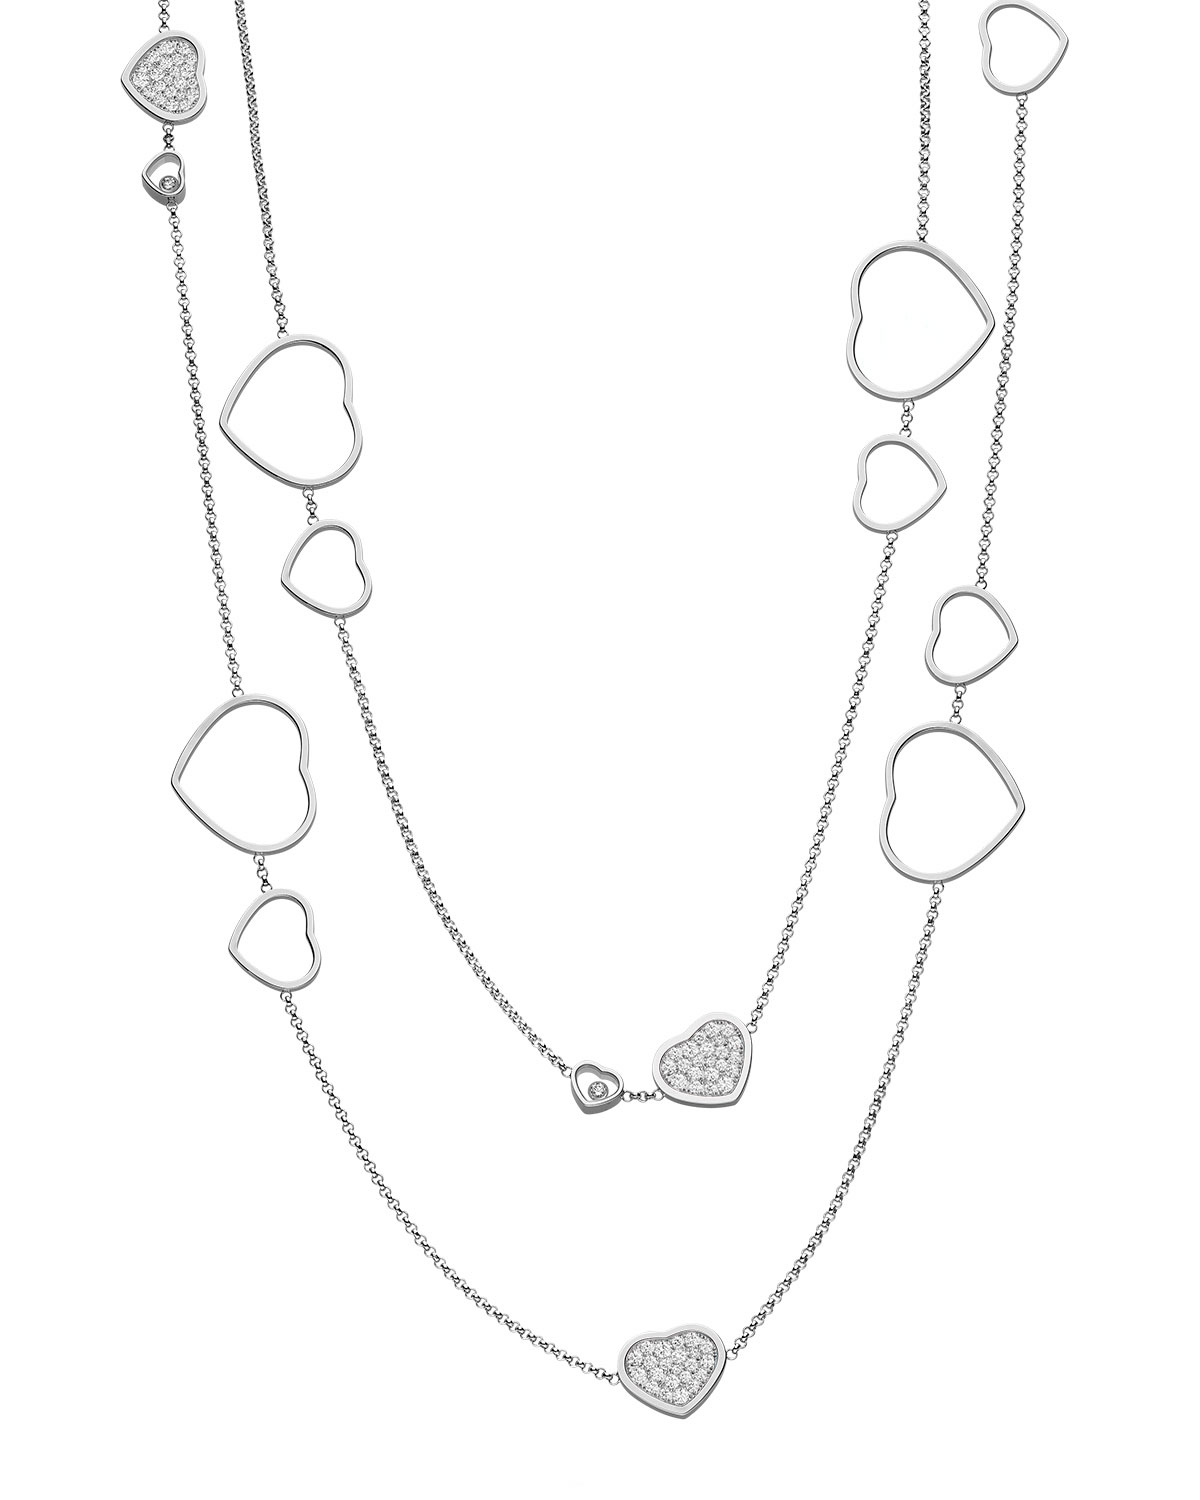 Happy Hearts 18K White Gold Diamond Long Station Necklace Throughout Newest White Gold Diamond Sautoir Necklaces (Gallery 8 of 25)